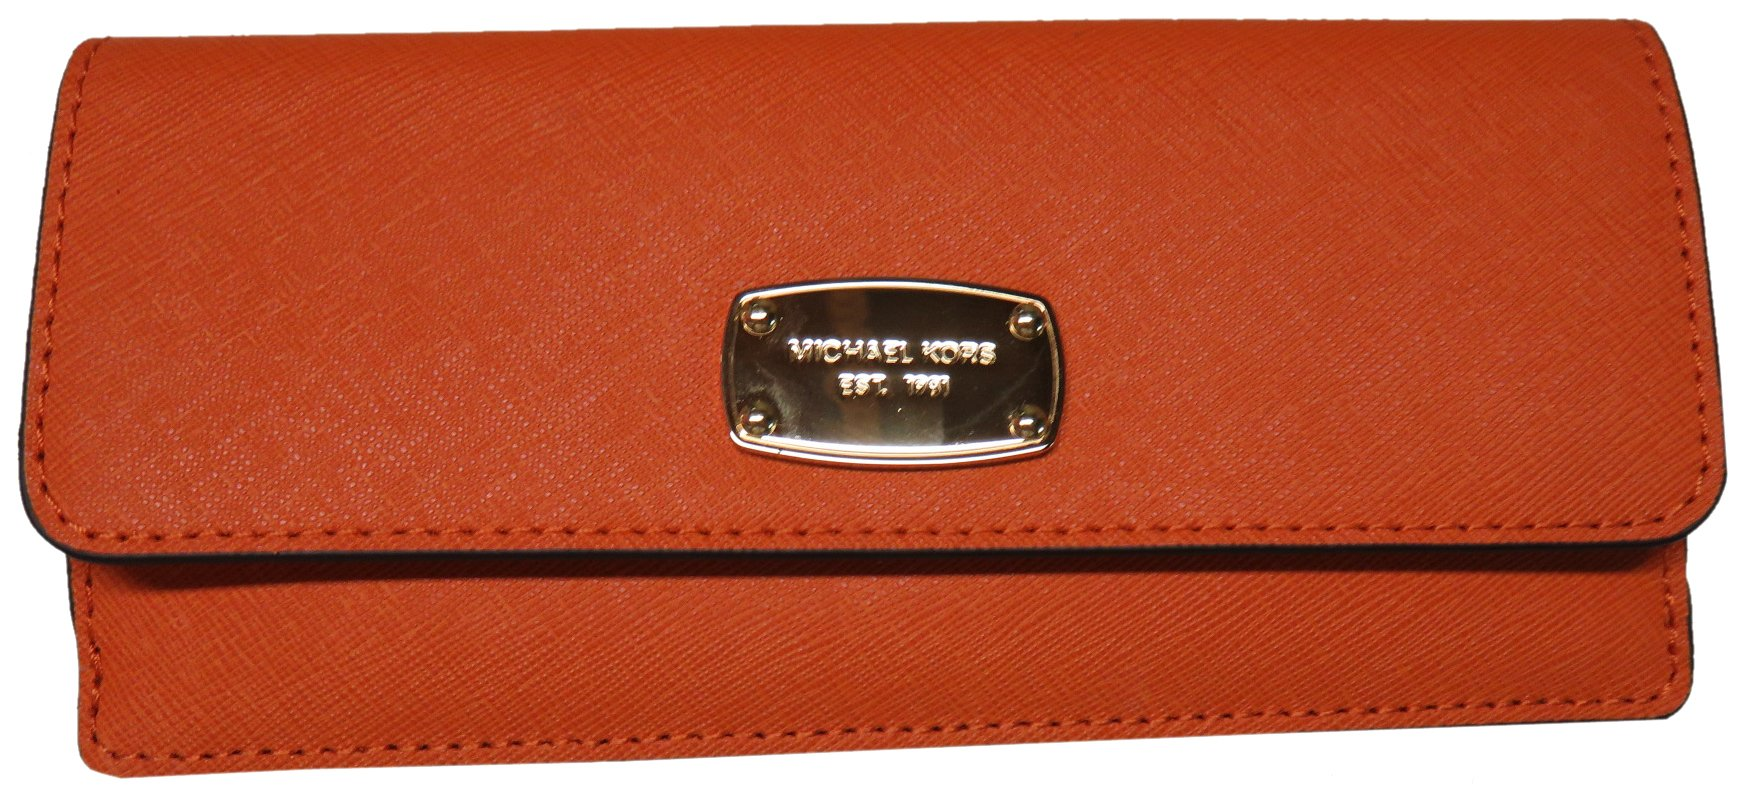 Michael Kors Jet Set Travel Flat Saffiano Leather Wallet (Tangerine Orange)